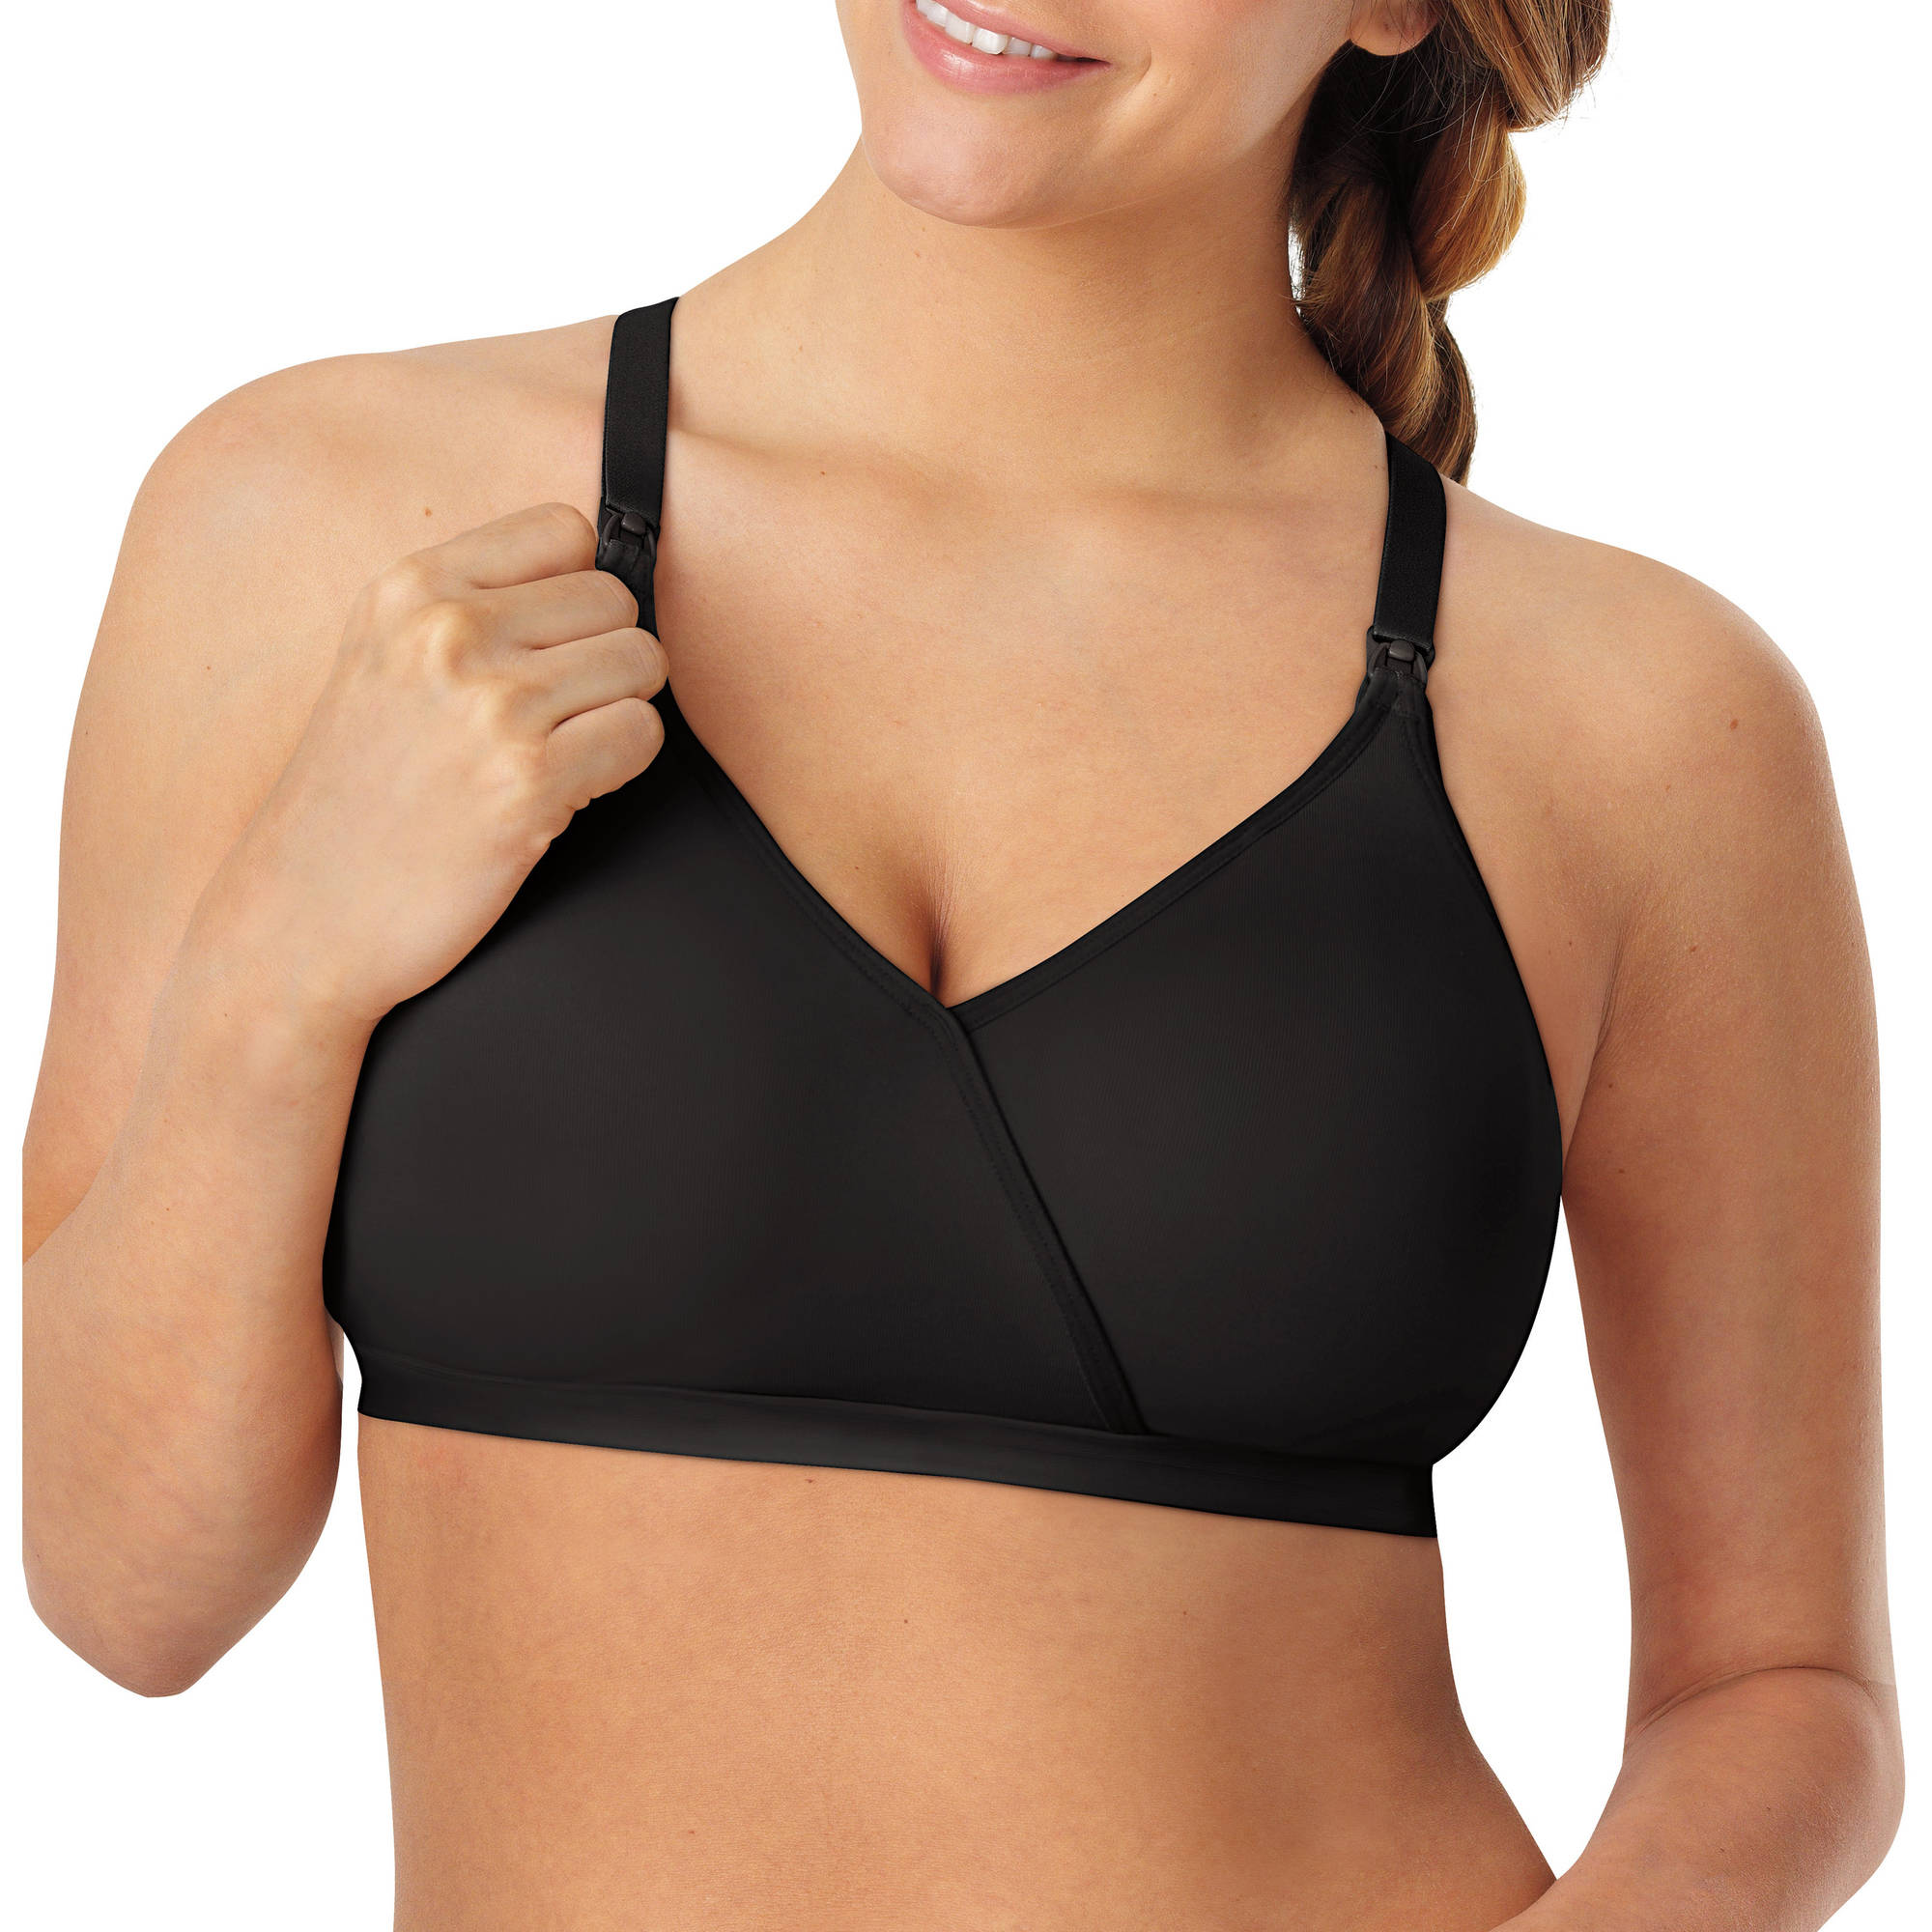 Playtex Maternity Shaping Foam Wirefree Nursing Bra, Style 4958